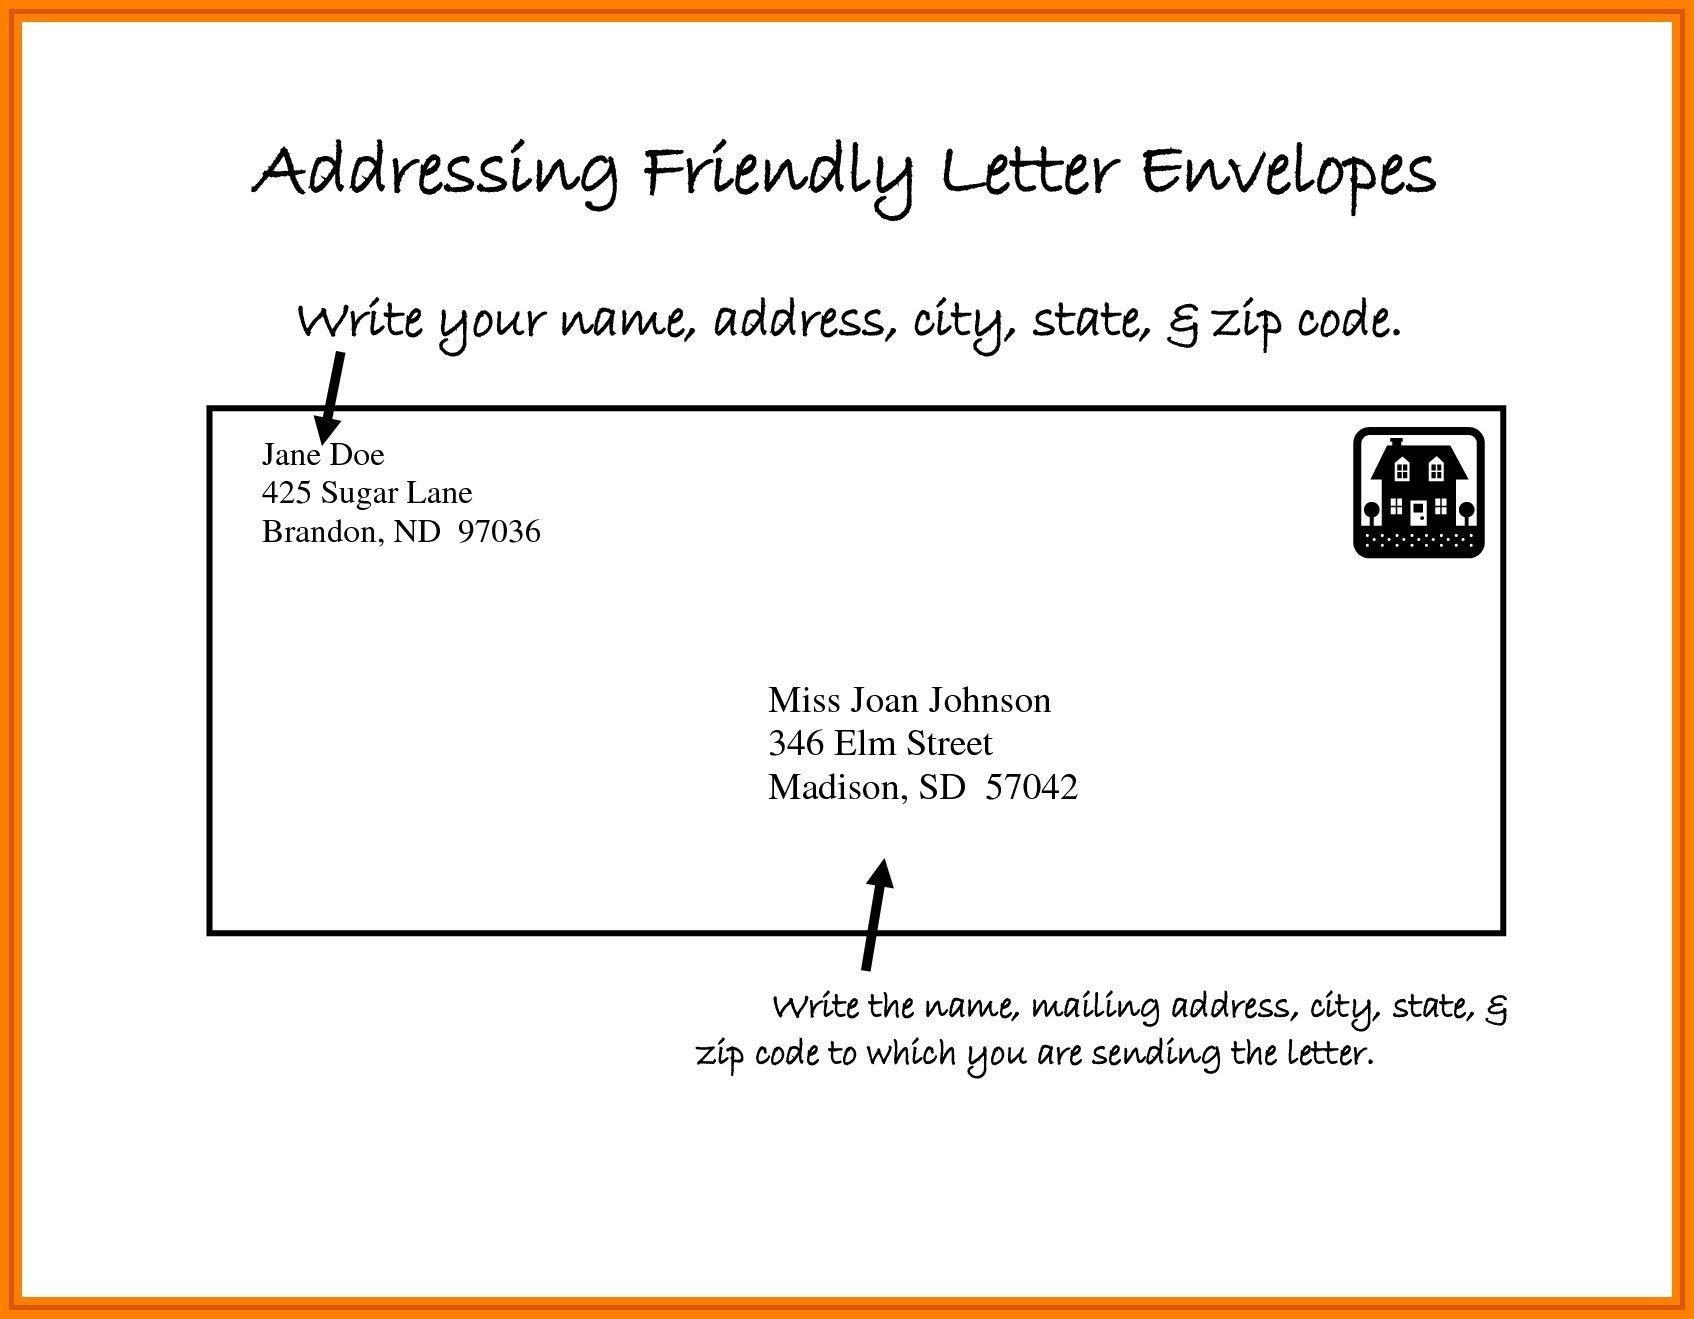 You Can See This New Business Letter Envelope Format Example At New Business Letter Envelope Format E Letter Addressing Envelope Lettering Addressing Envelopes